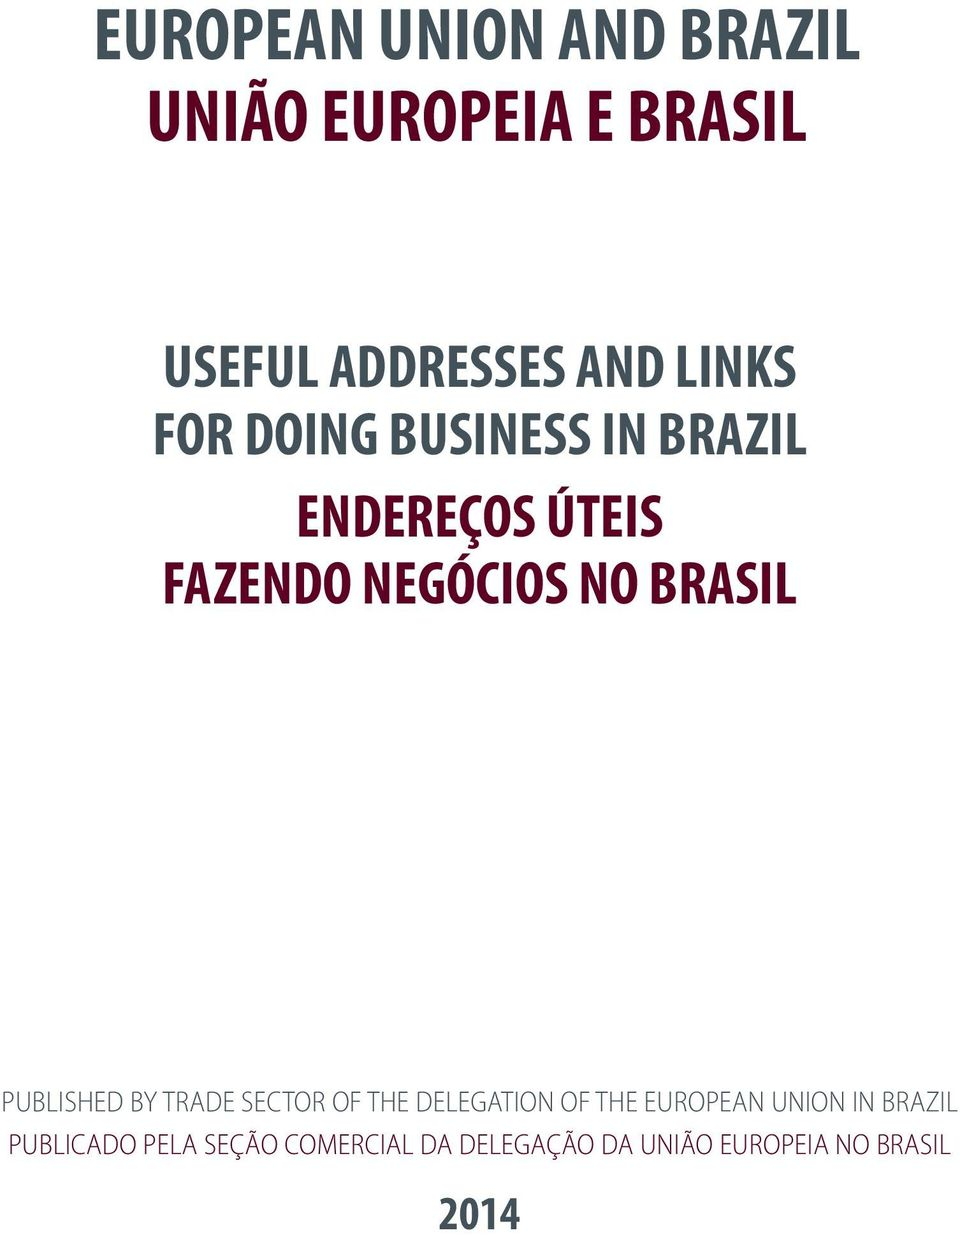 BRASIL PUBLISHED BY TRADE SECTOR OF THE DELEGATION OF THE EUROPEAN UNION IN